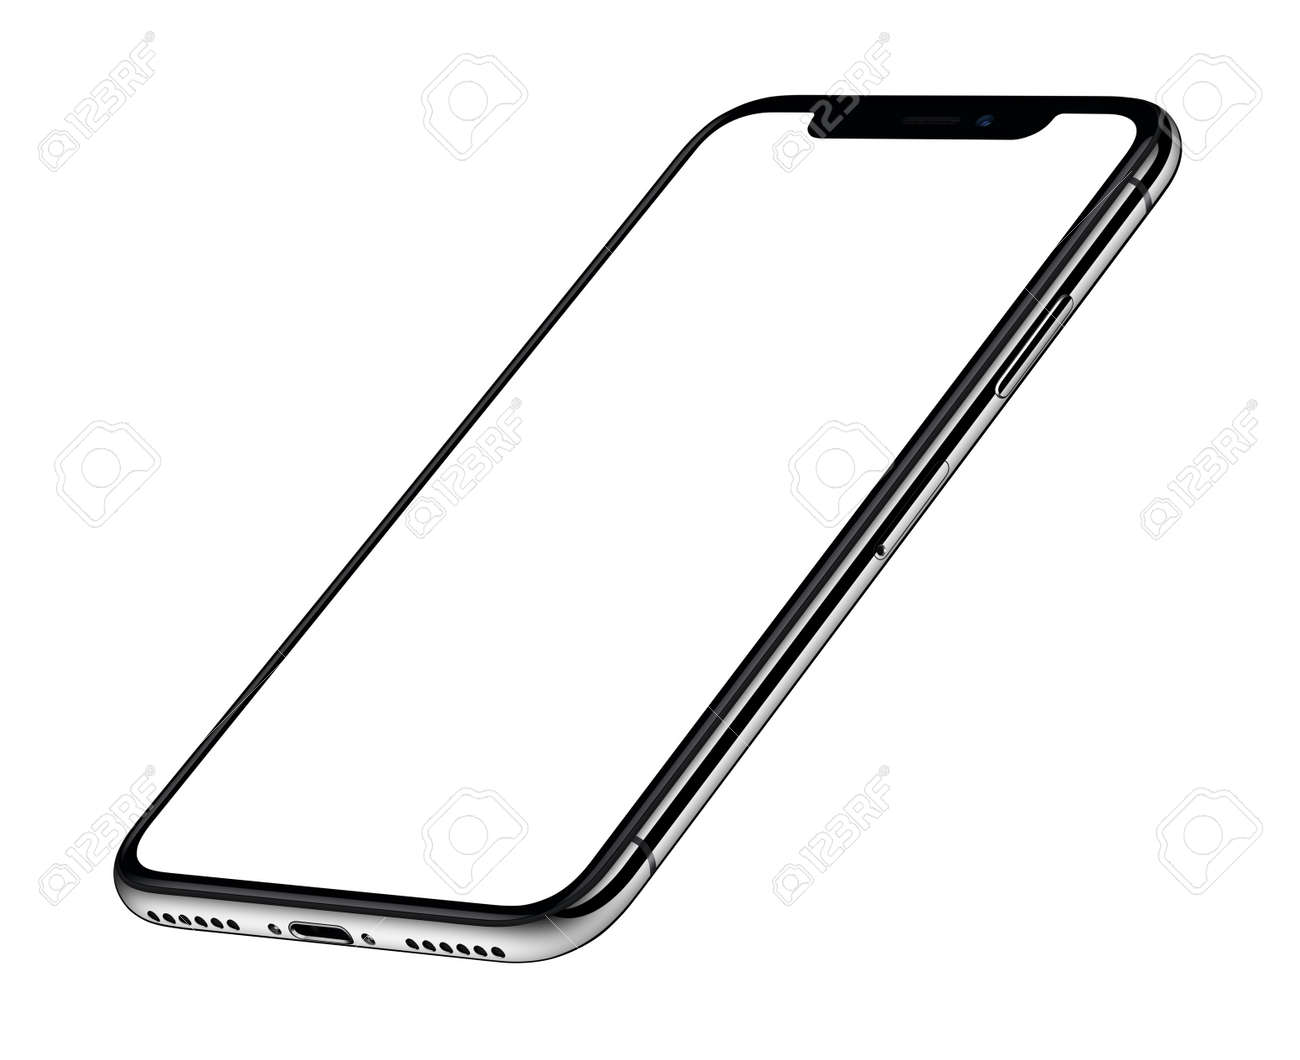 Perspective isometric smartphone mockup front side CCW rotated - 91699947